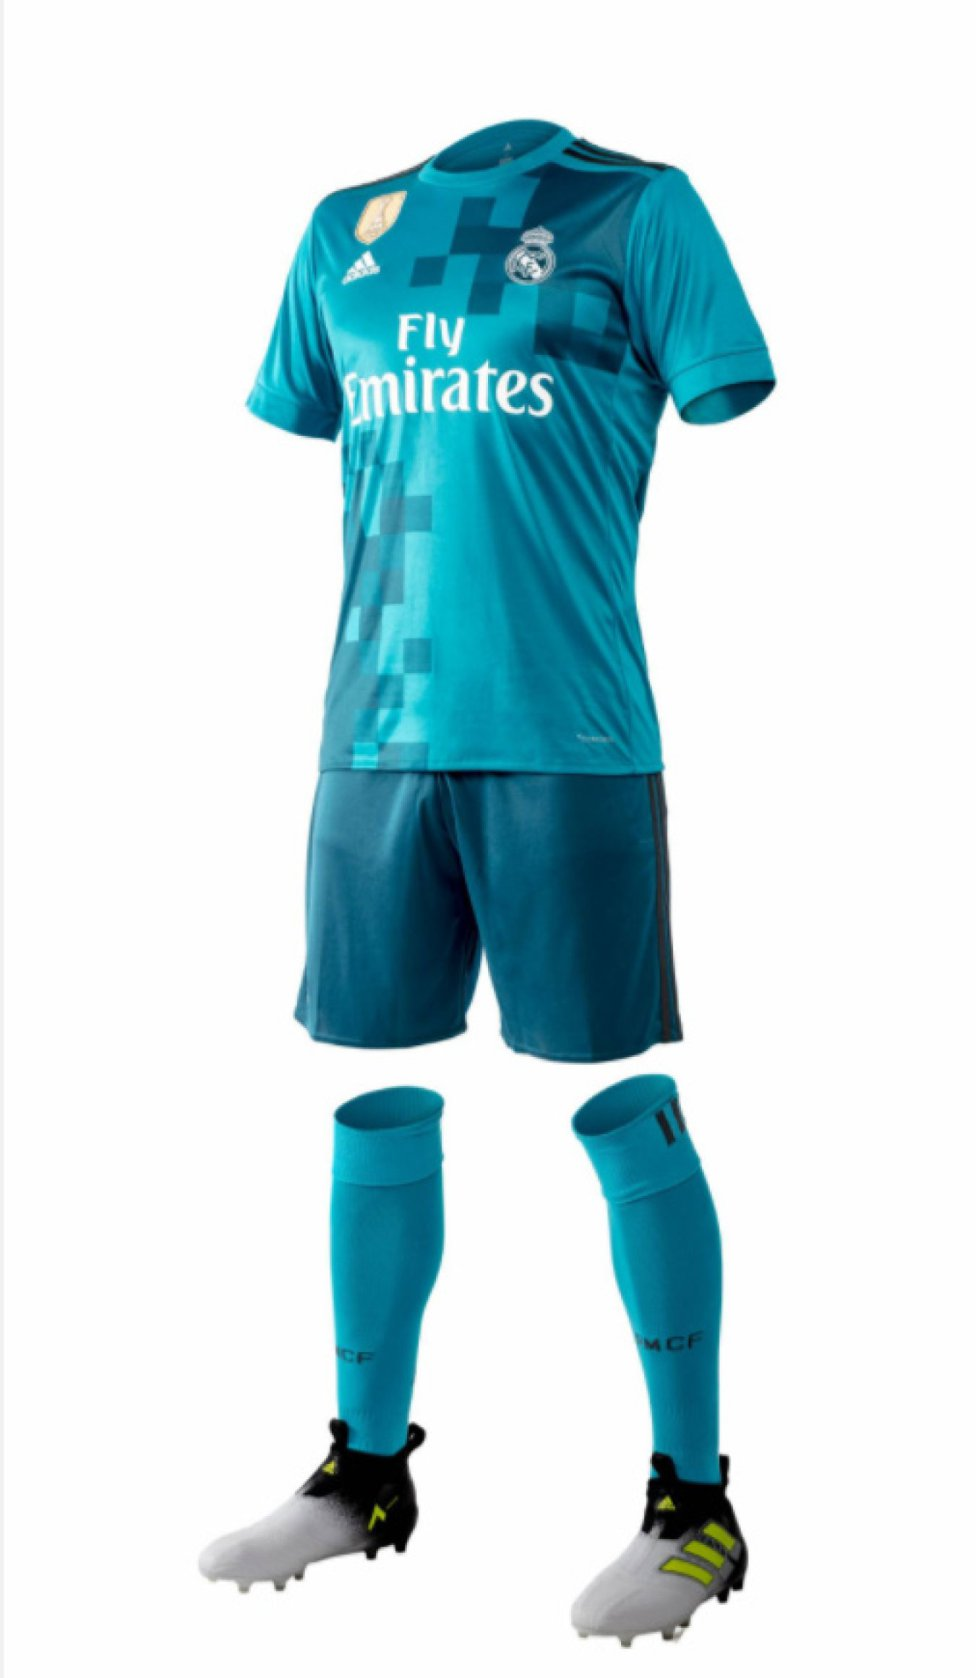 wholesale dealer 928b4 08609 Real Madrid's 2017/18 third kit in pictures - AS.com